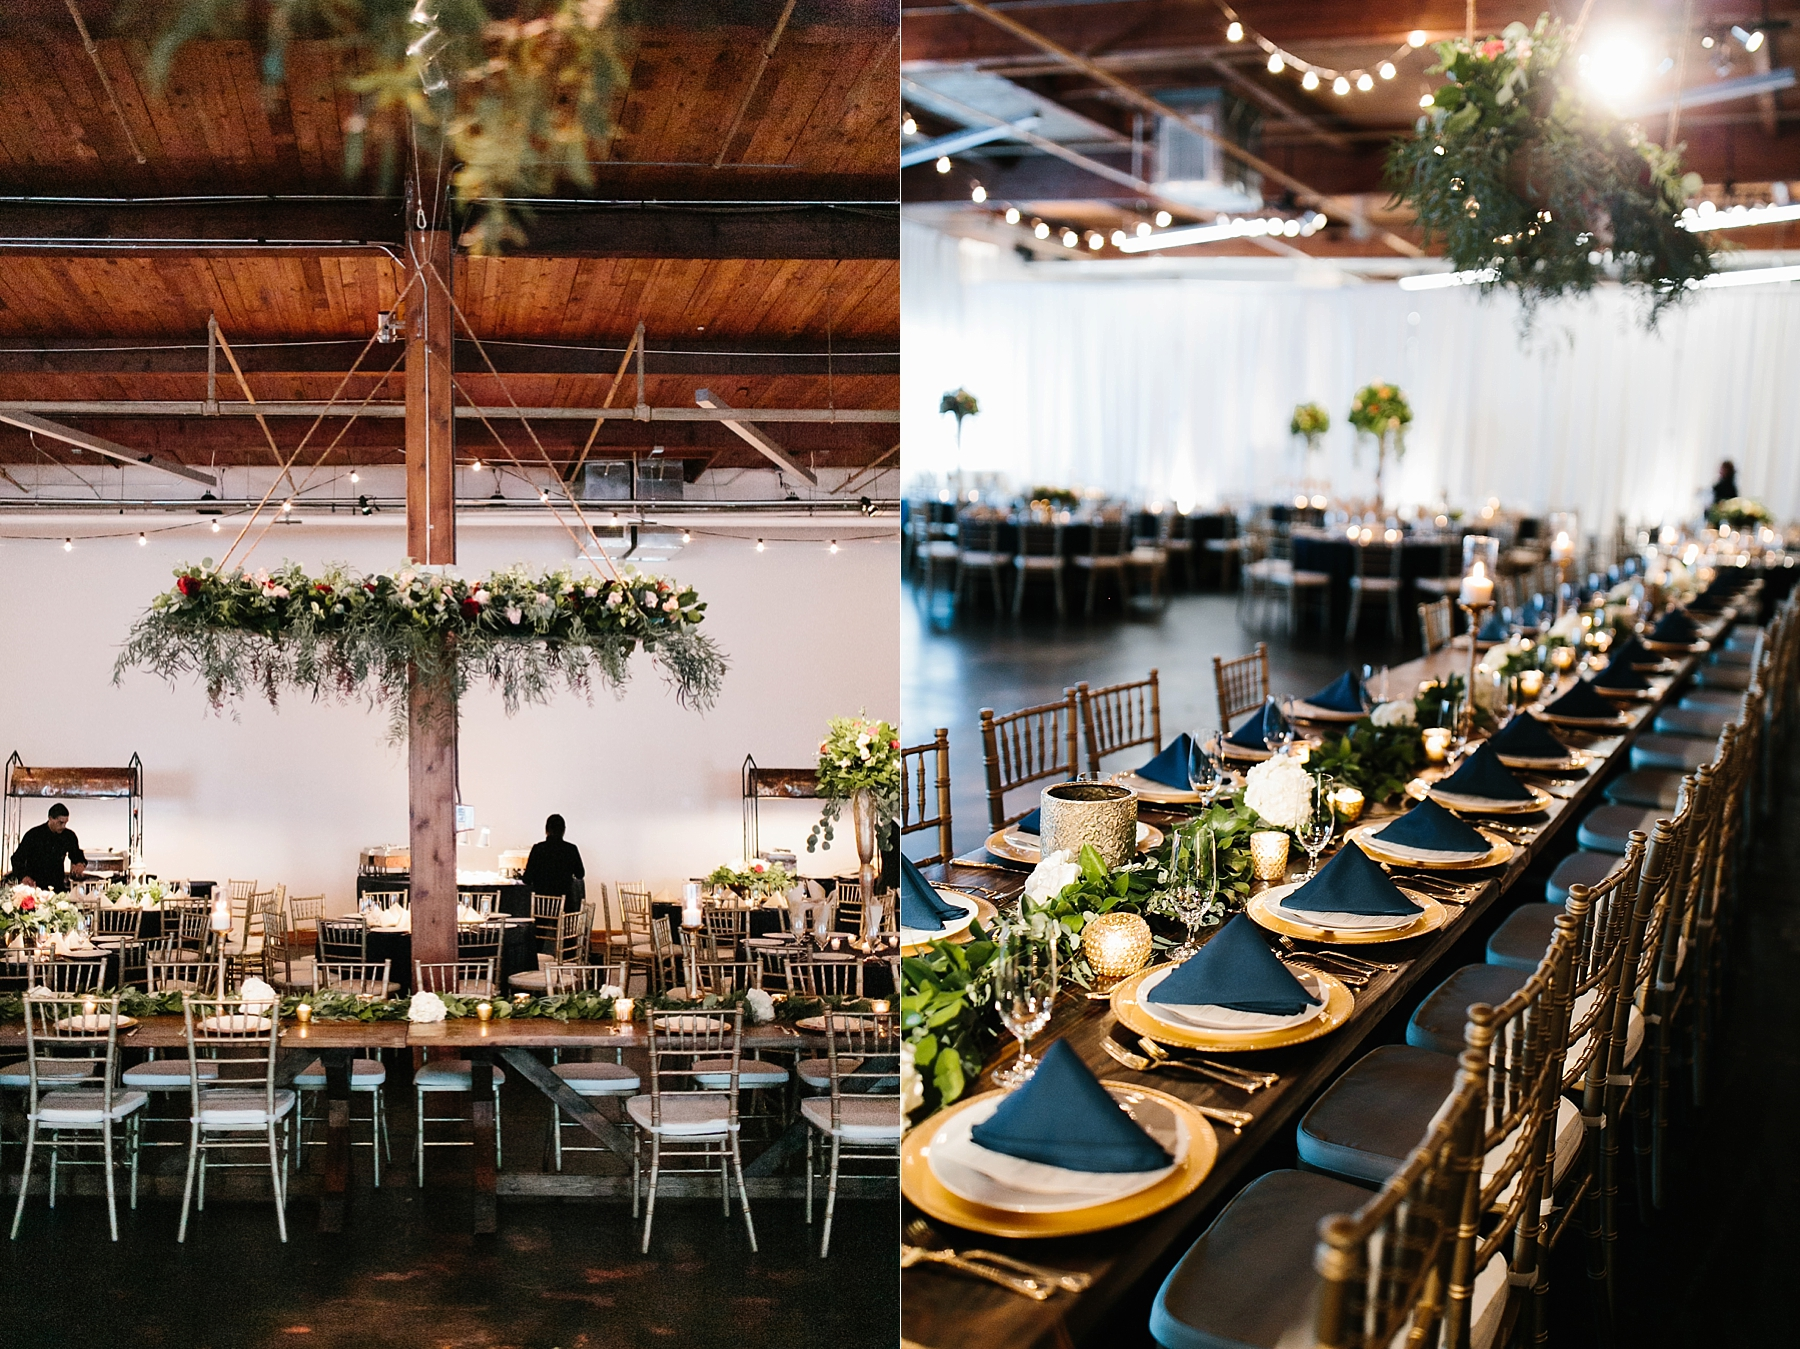 Emily + Caleb _ an elegant, intentional, industrial style wedding with navy + gold accents at 6500 in Dallas, TX by North Texas Wedding Photographer Rachel Meagan Photography _ 073